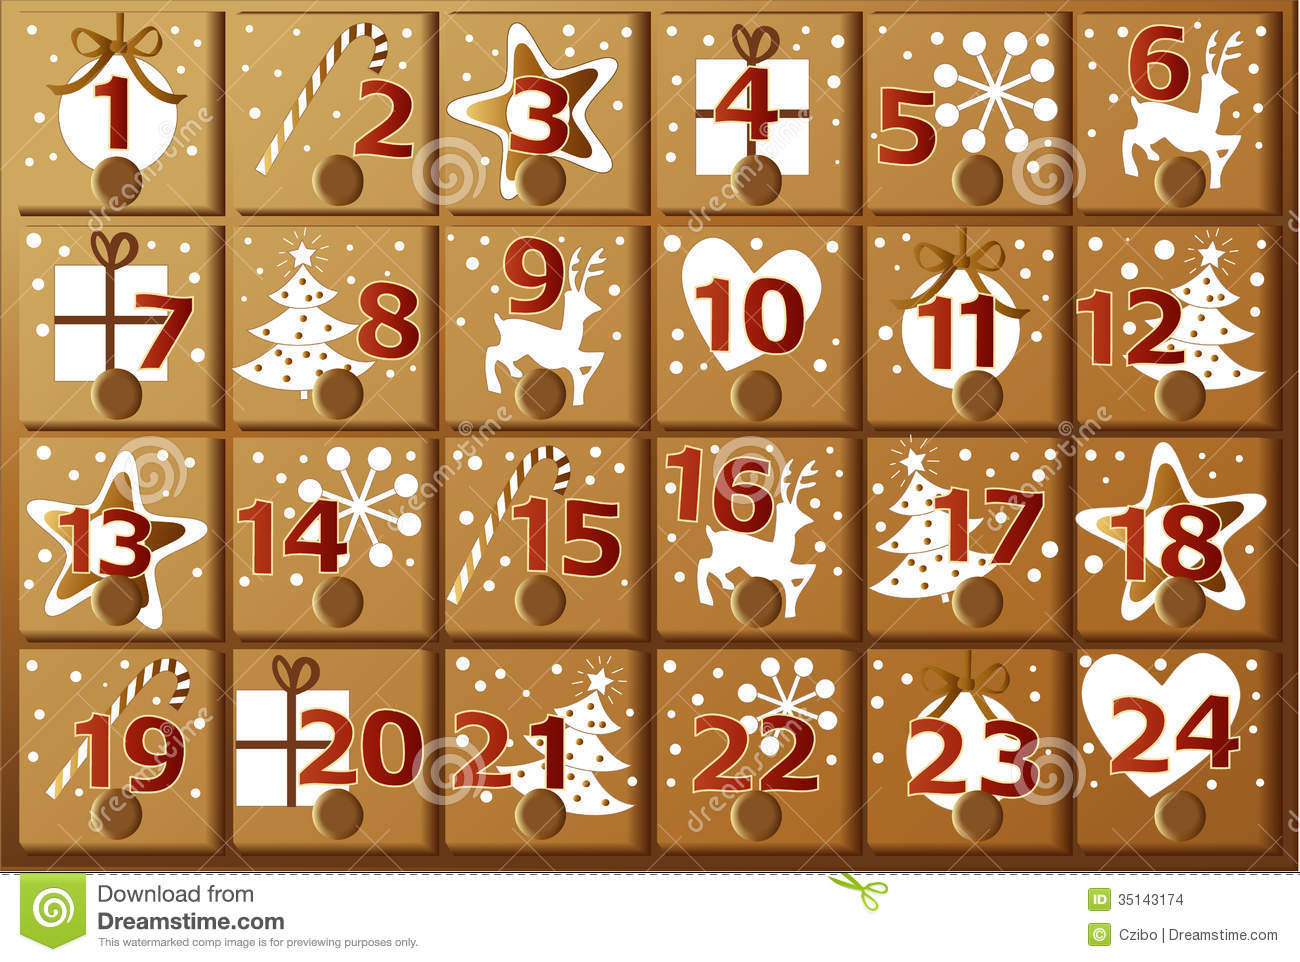 Advent Calendar Clipart advent calendar stock images - image: 35143174